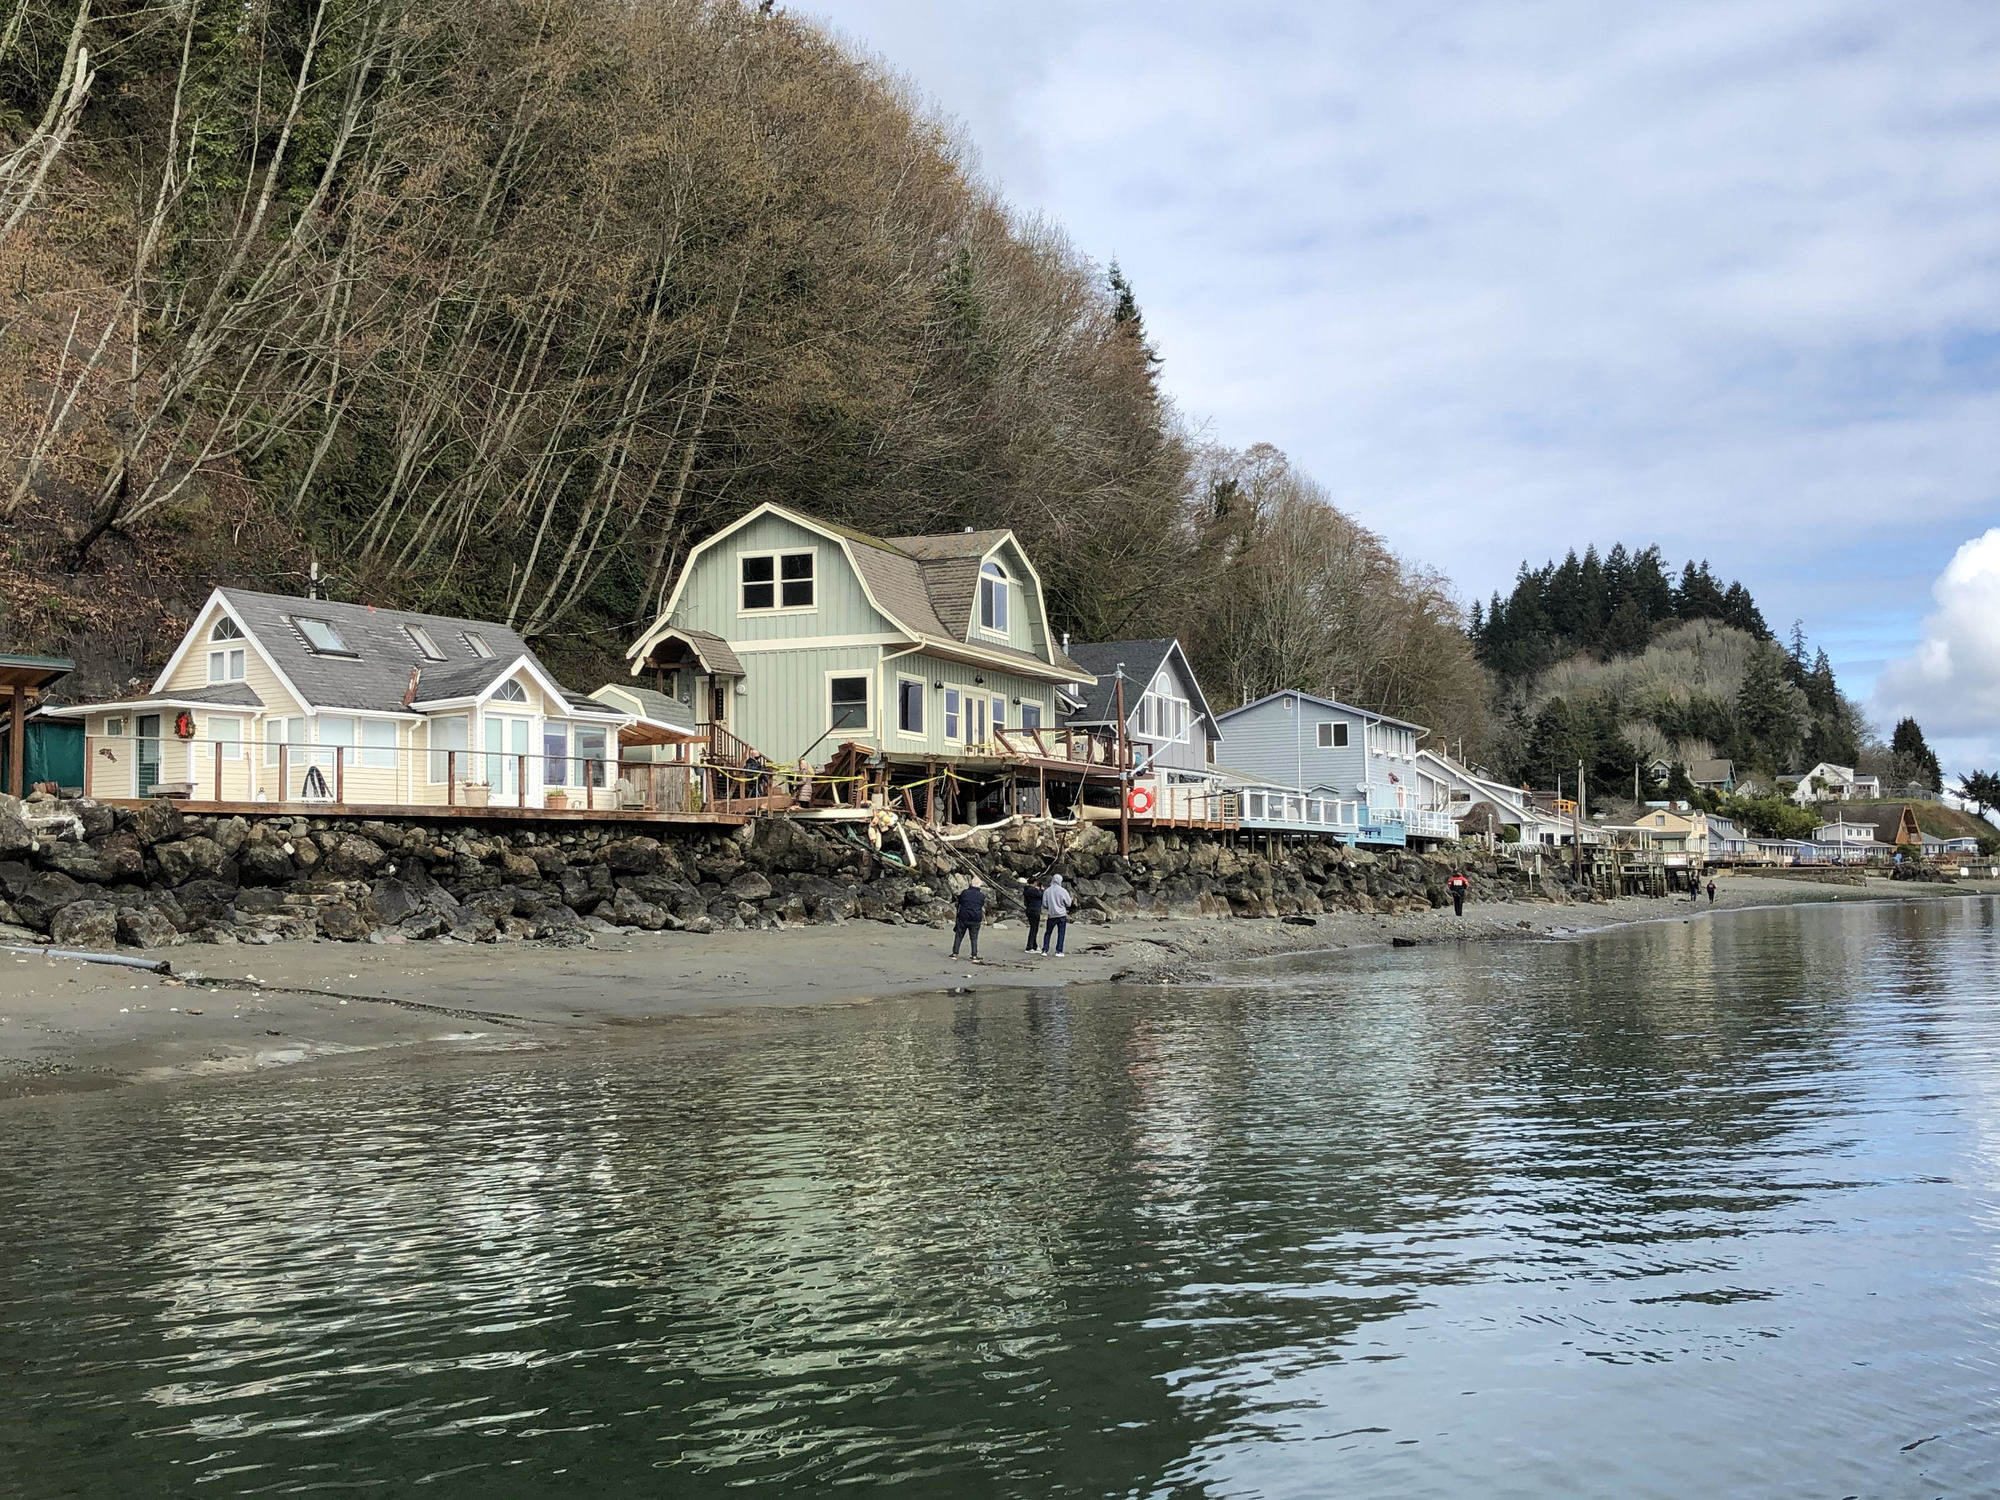 Private docks, residences struck by barge in Gig Harbor, Washington